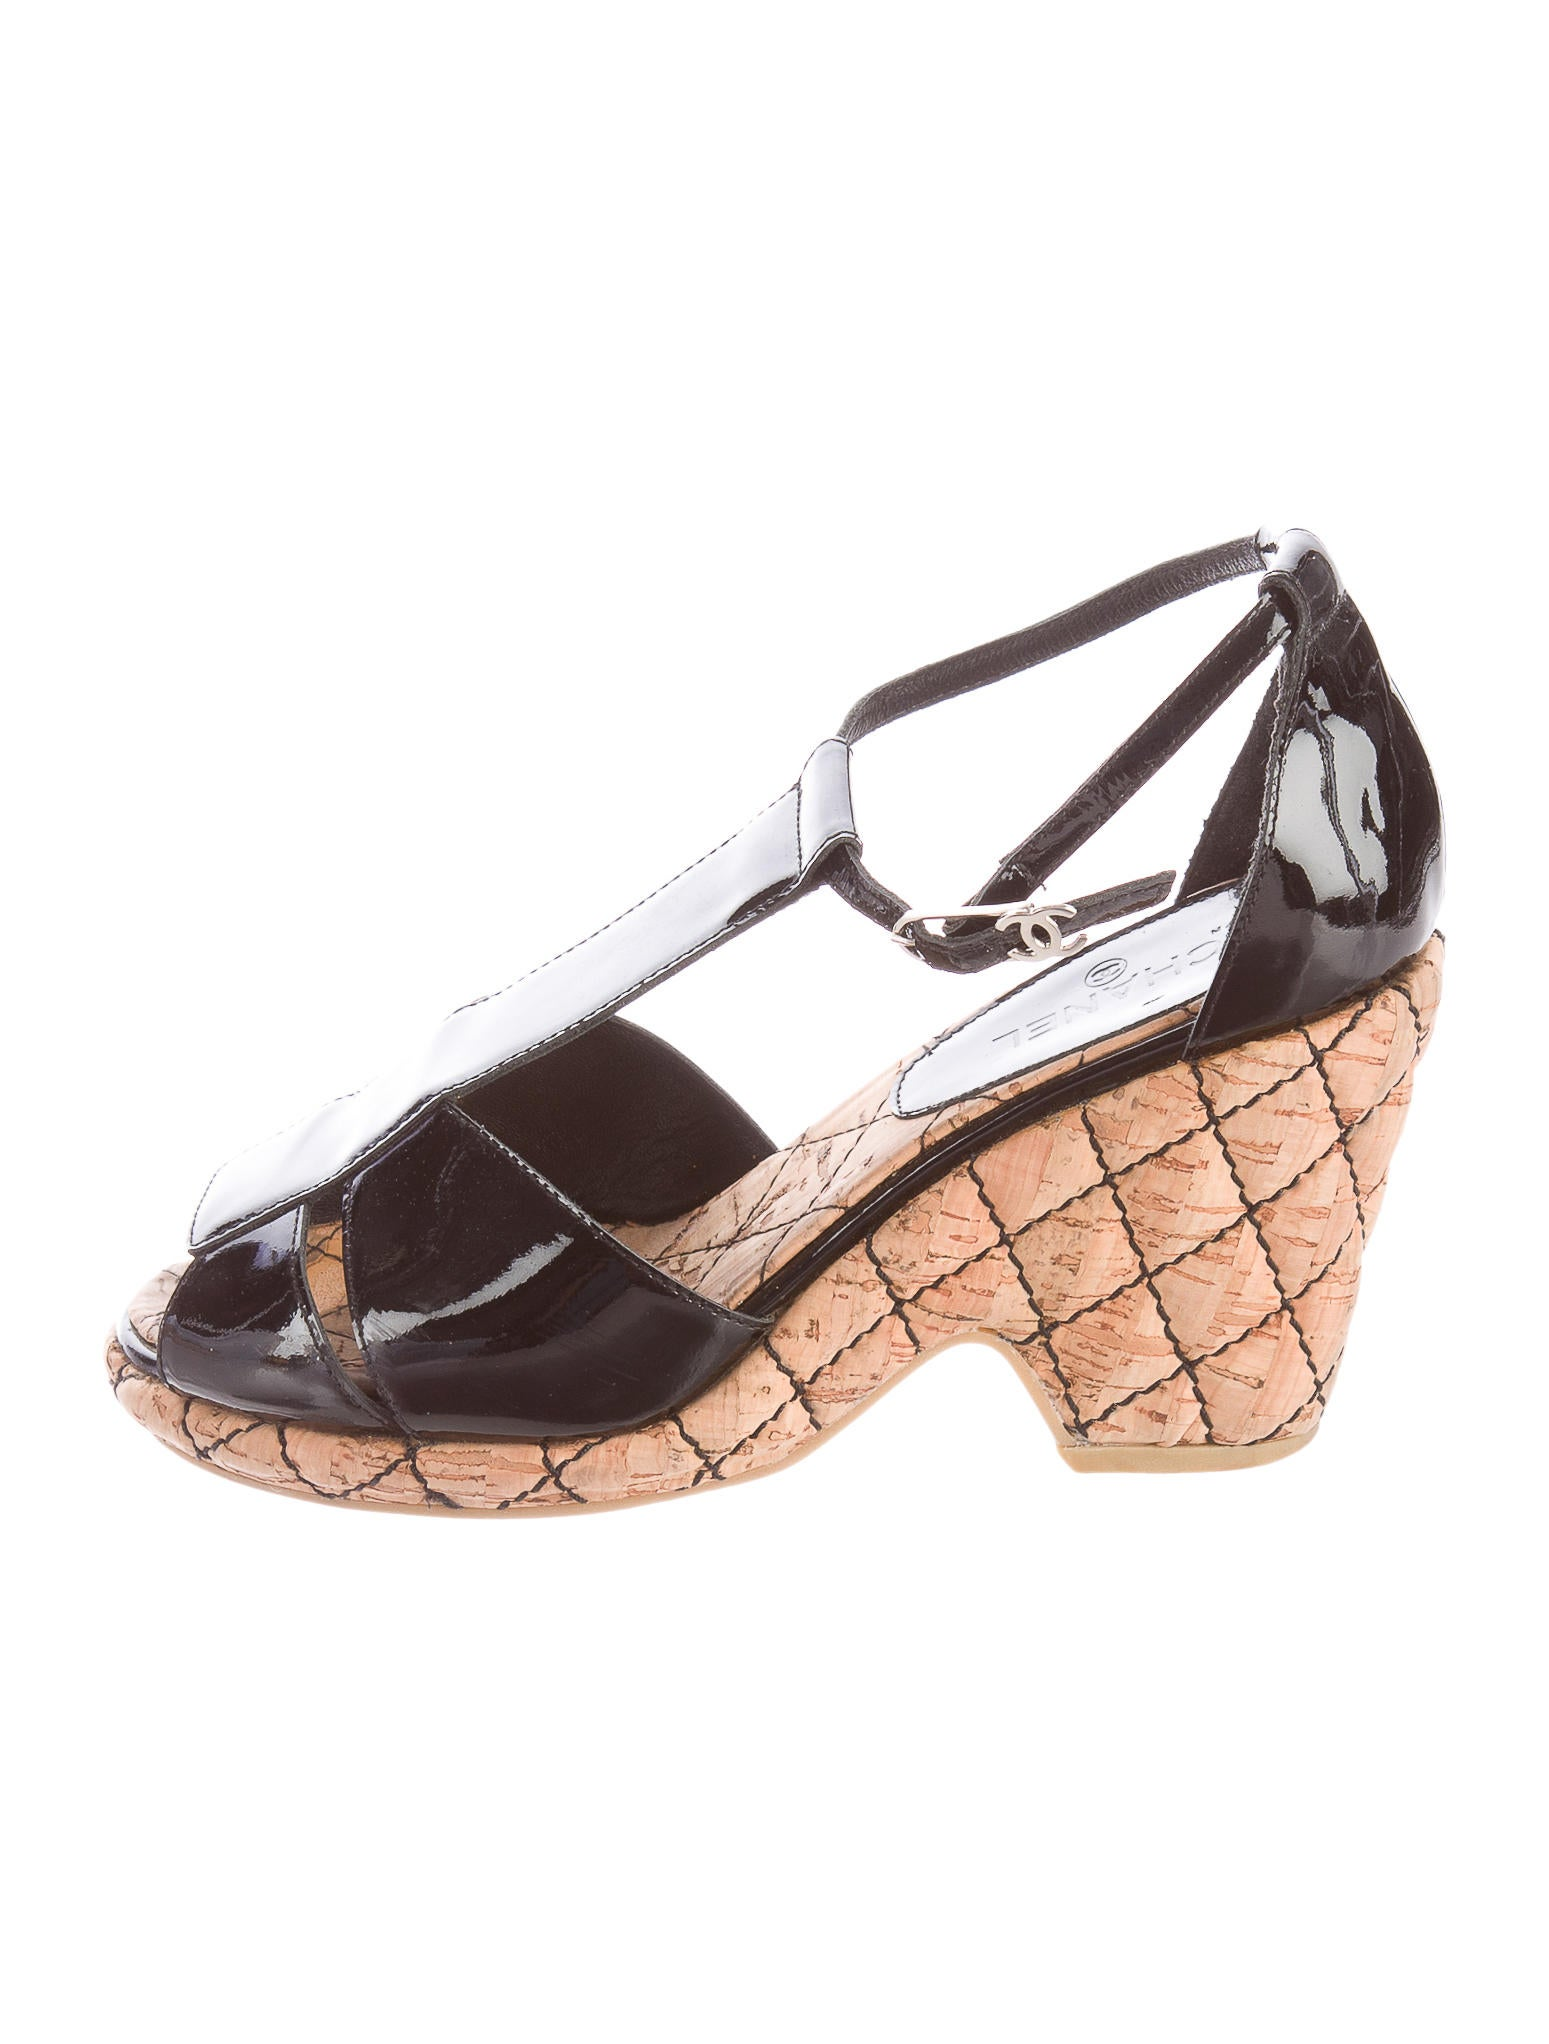 Chanel Quilted T-Strap Sandals - Shoes - CHA126685 | The RealReal